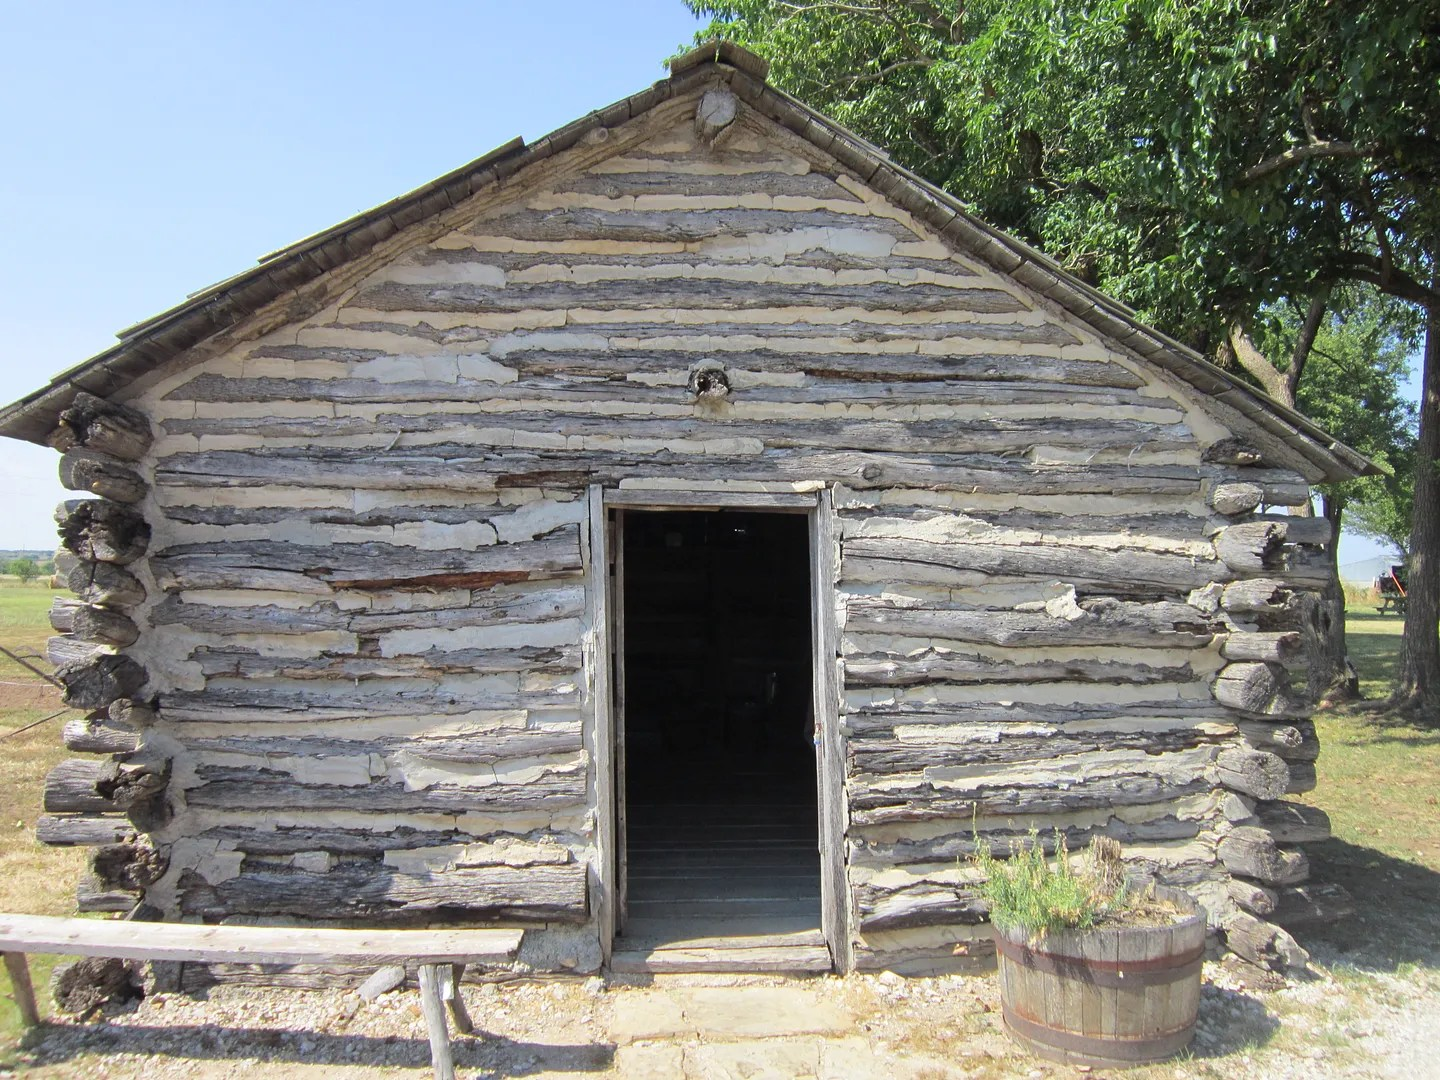 log cabin of LIES, Little House on the Prairie Museum, Independence, Kansas